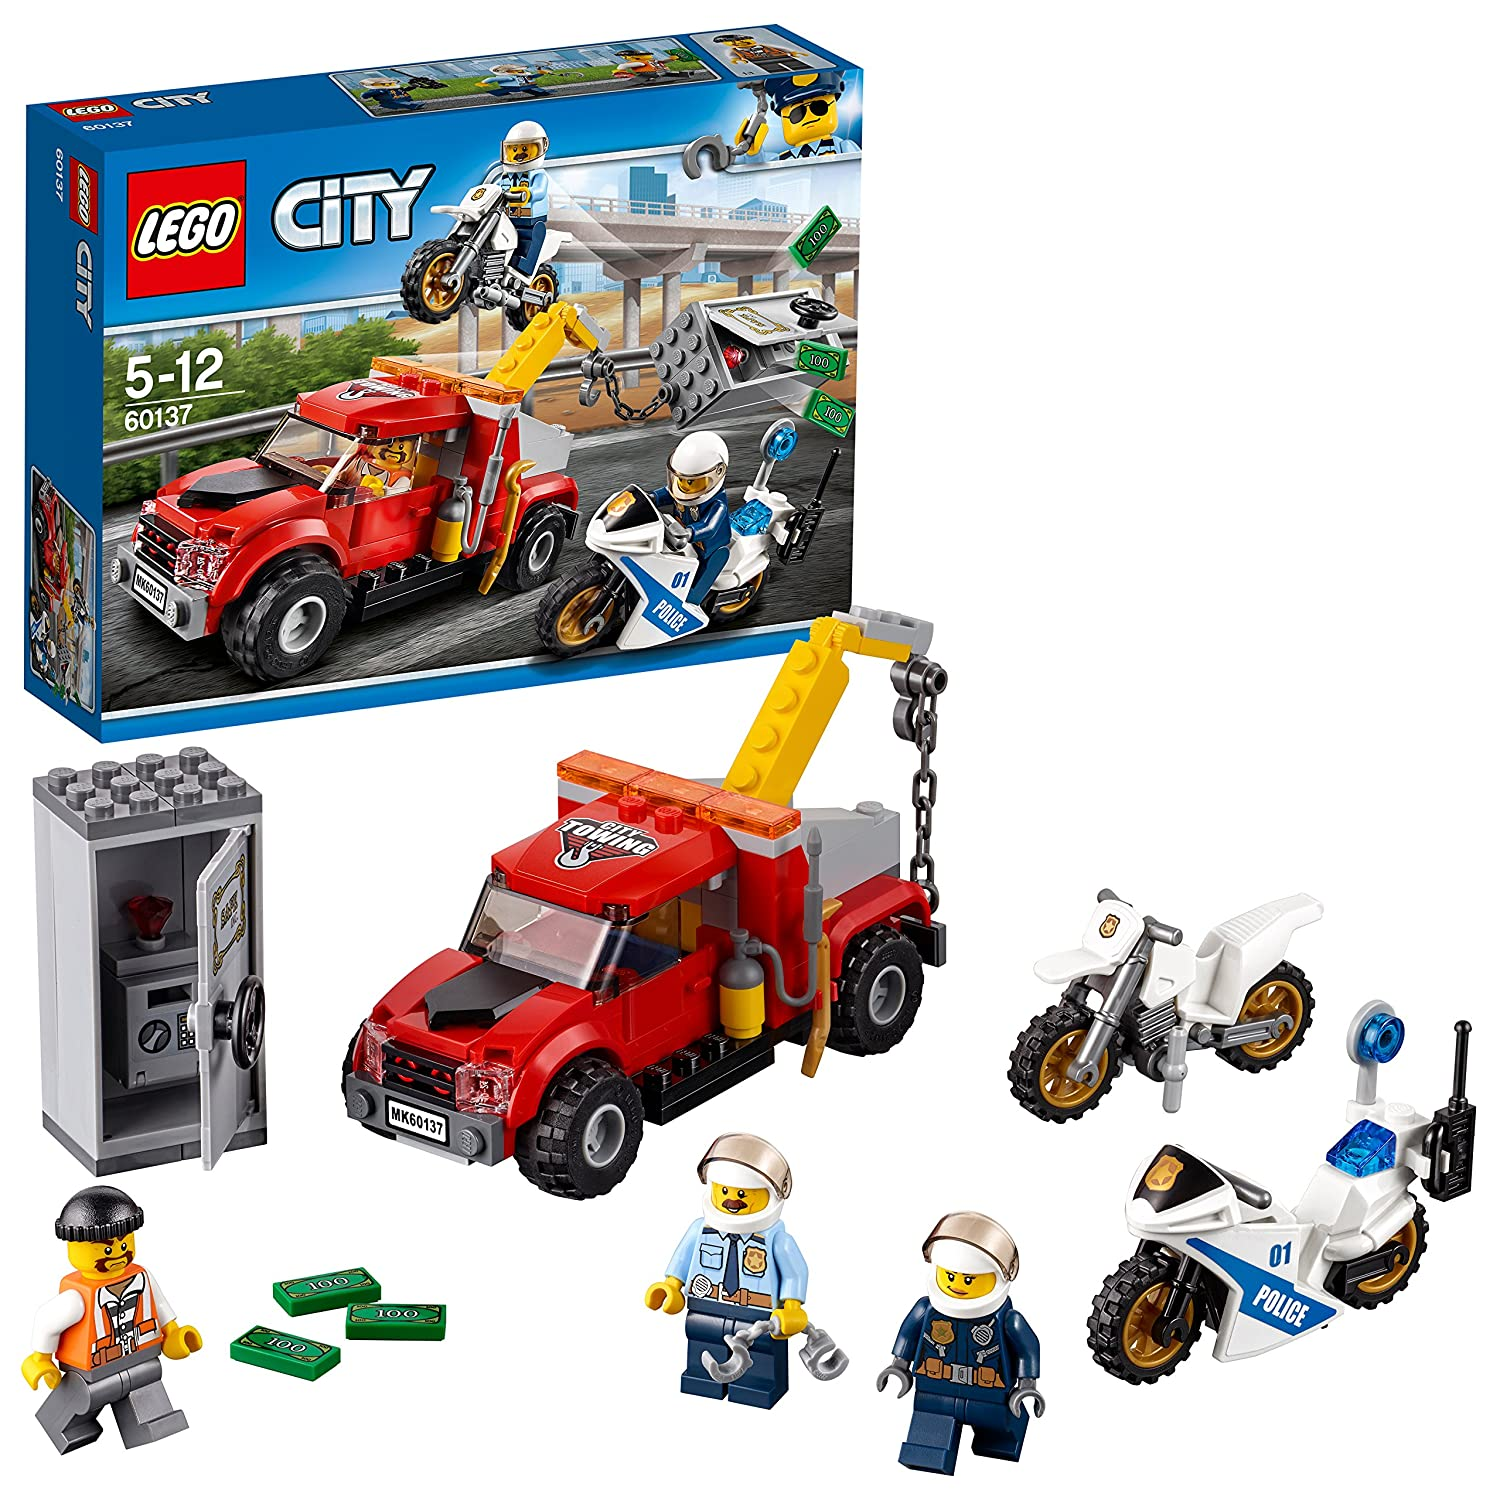 LEGO City - La poursuite du braqueur - 60137 - Jeu de Construction